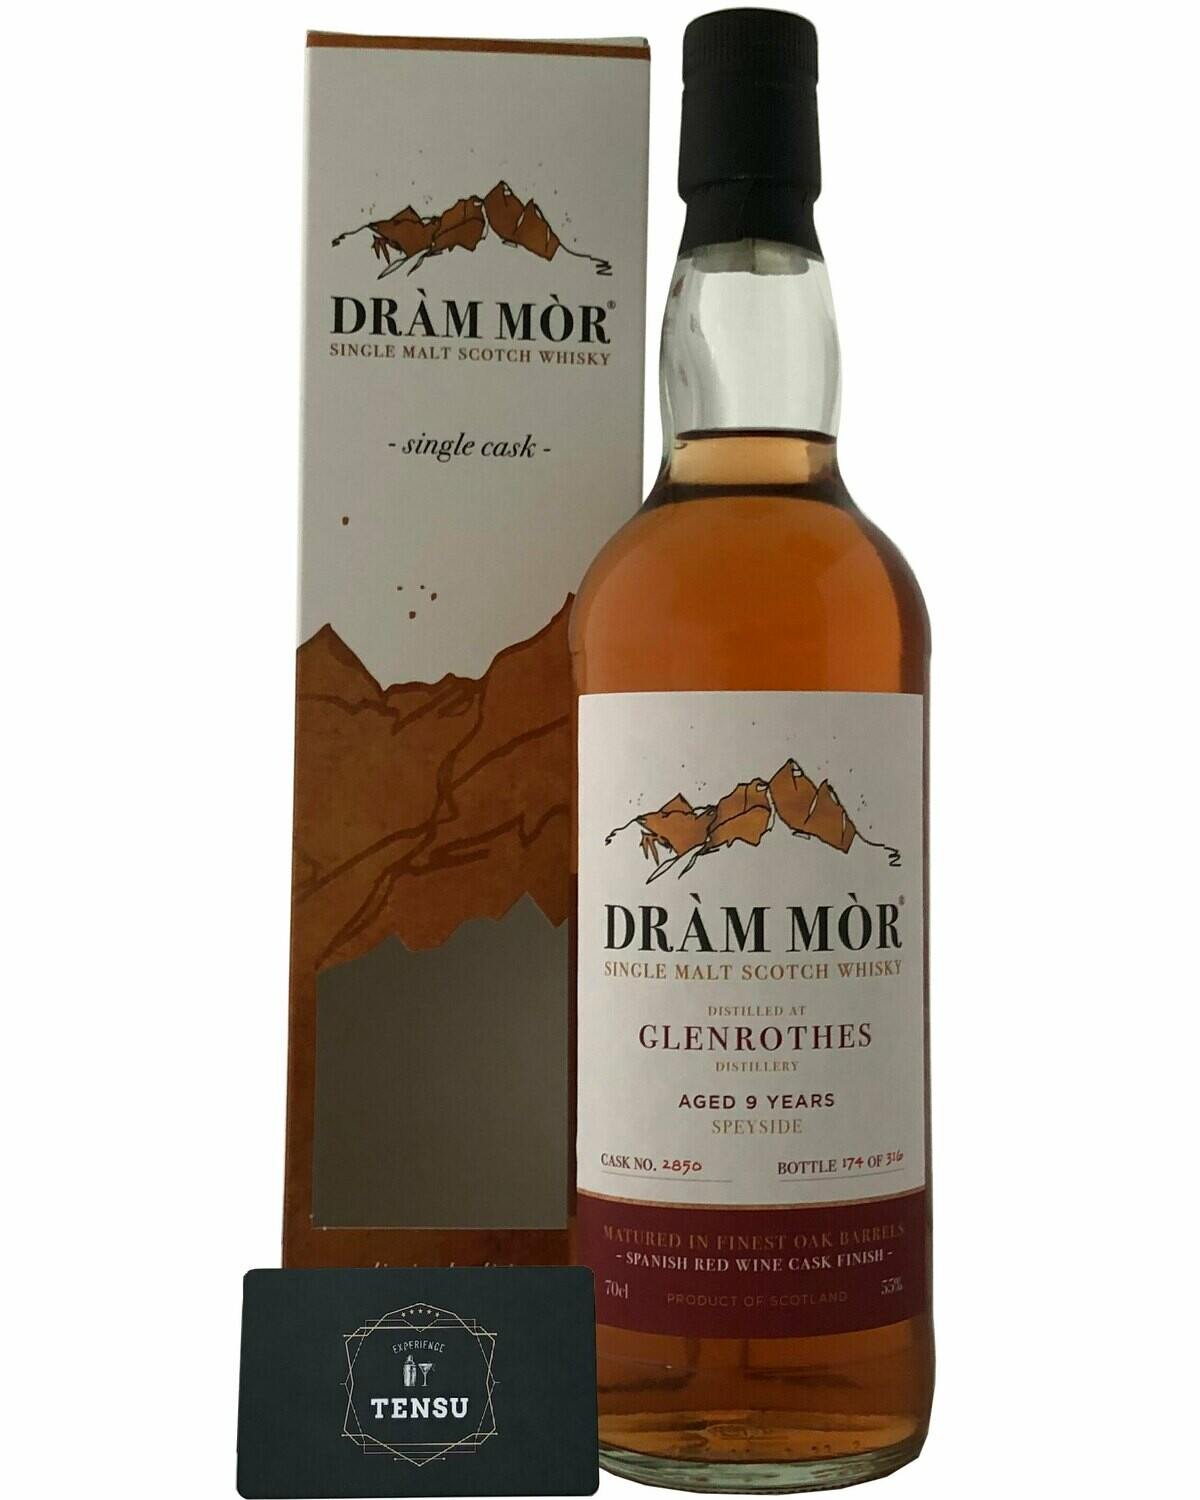 """Glenrothes 9 Years Old (2011-2020) Spanish Red Wine Cask Finish 55.0 """"Dram Mor"""""""